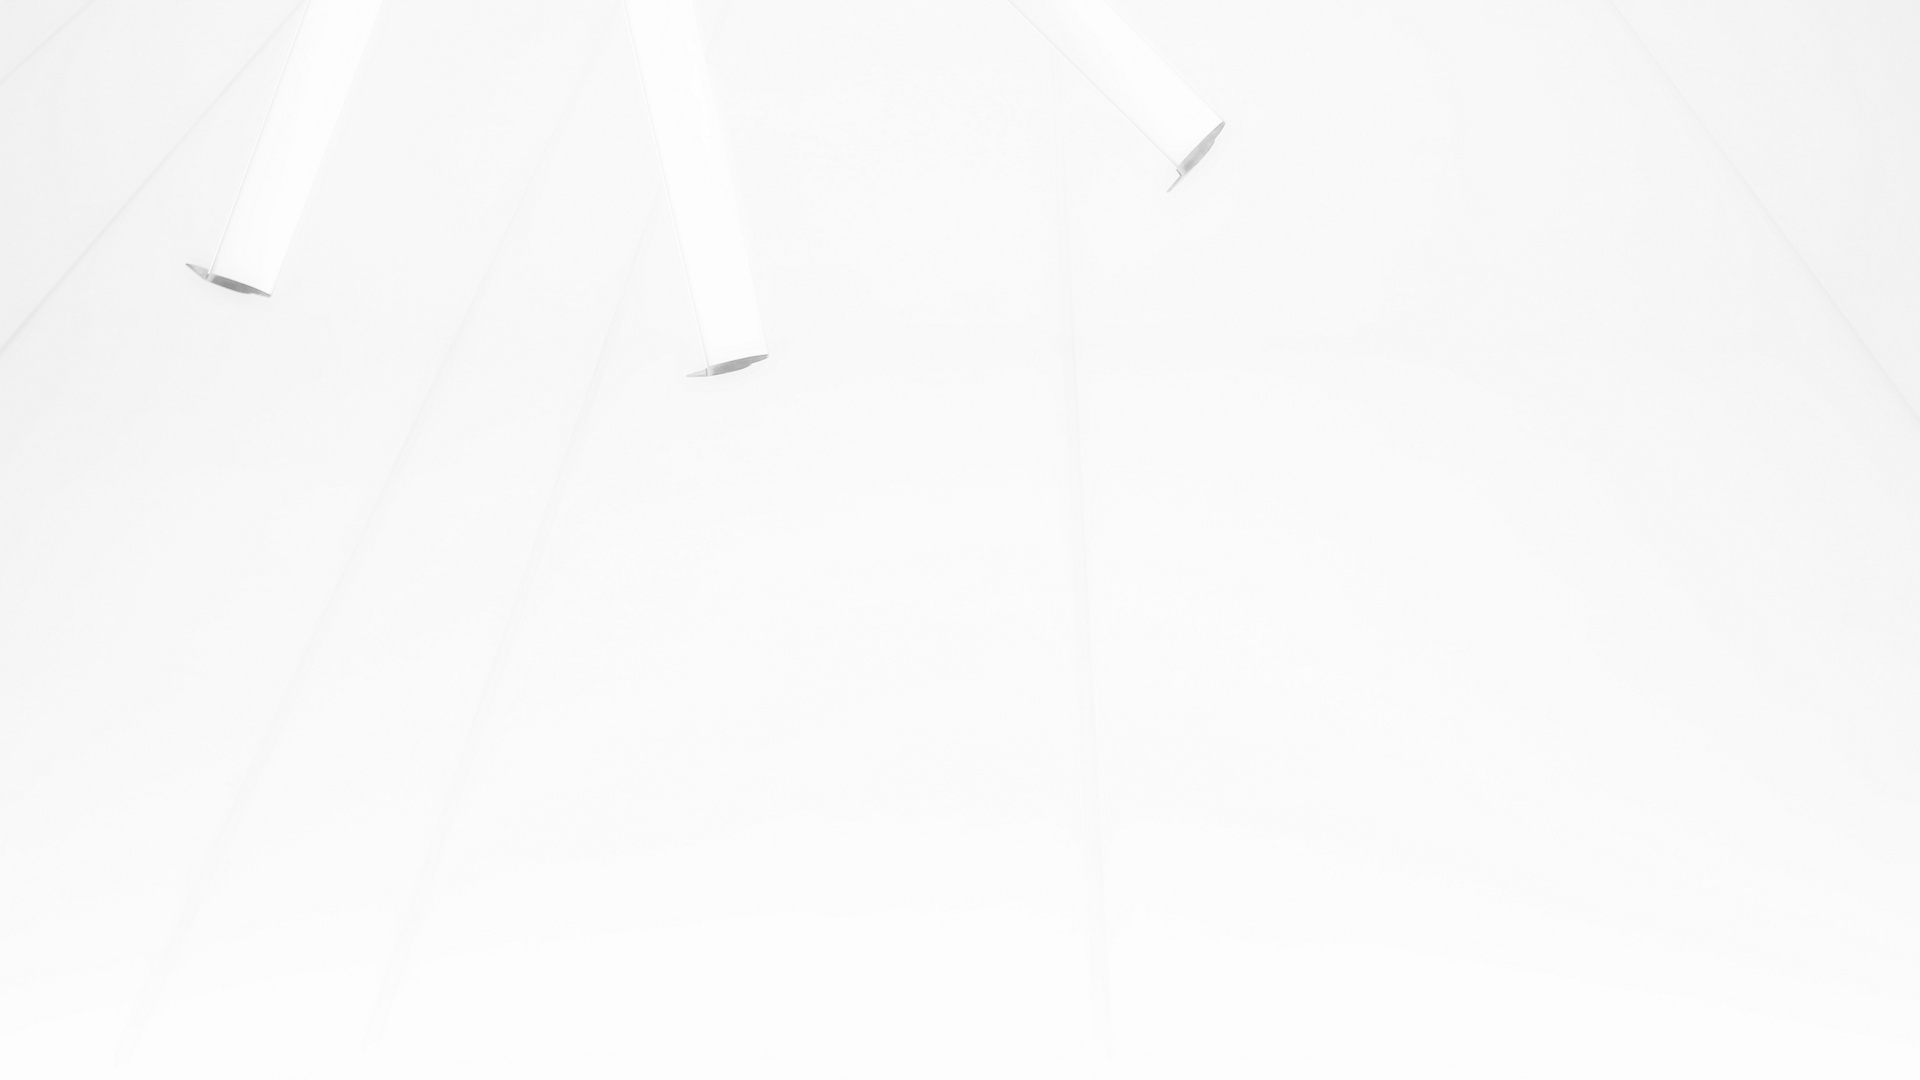 Minimal white desktop wallpapers - ojdo